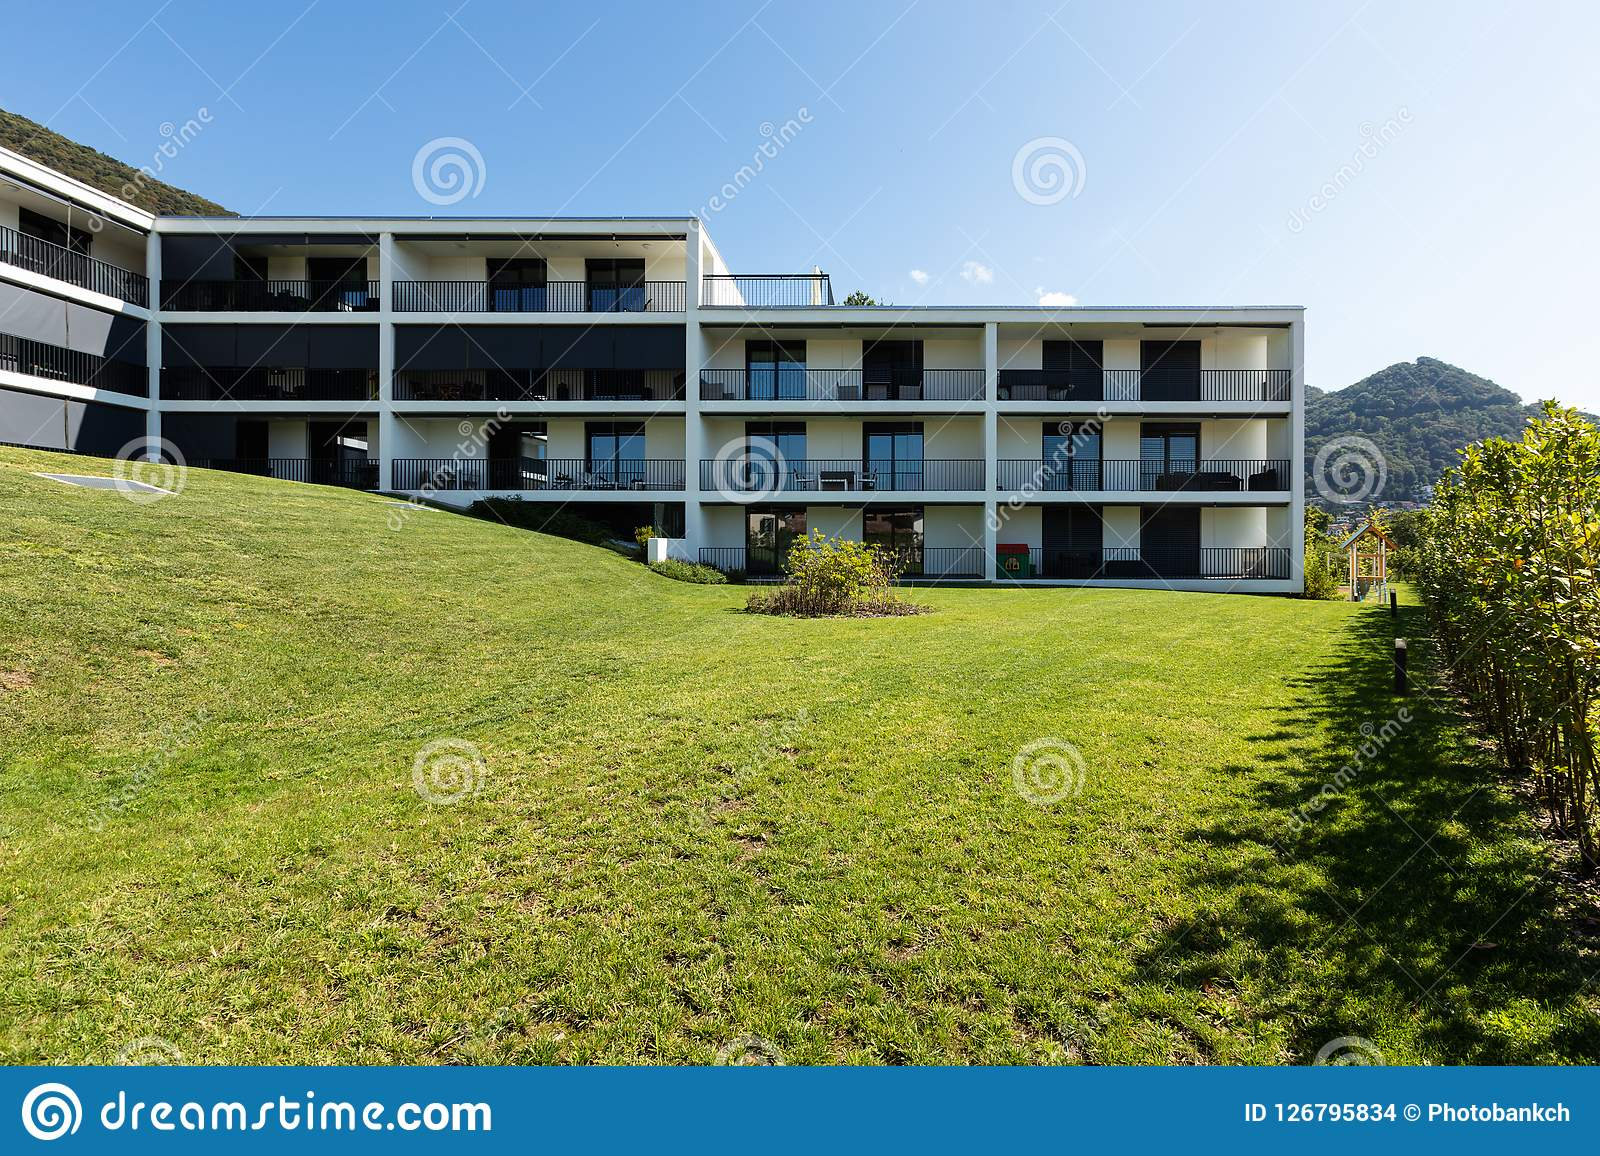 Exterior modern white condominium building with lots of lawn,